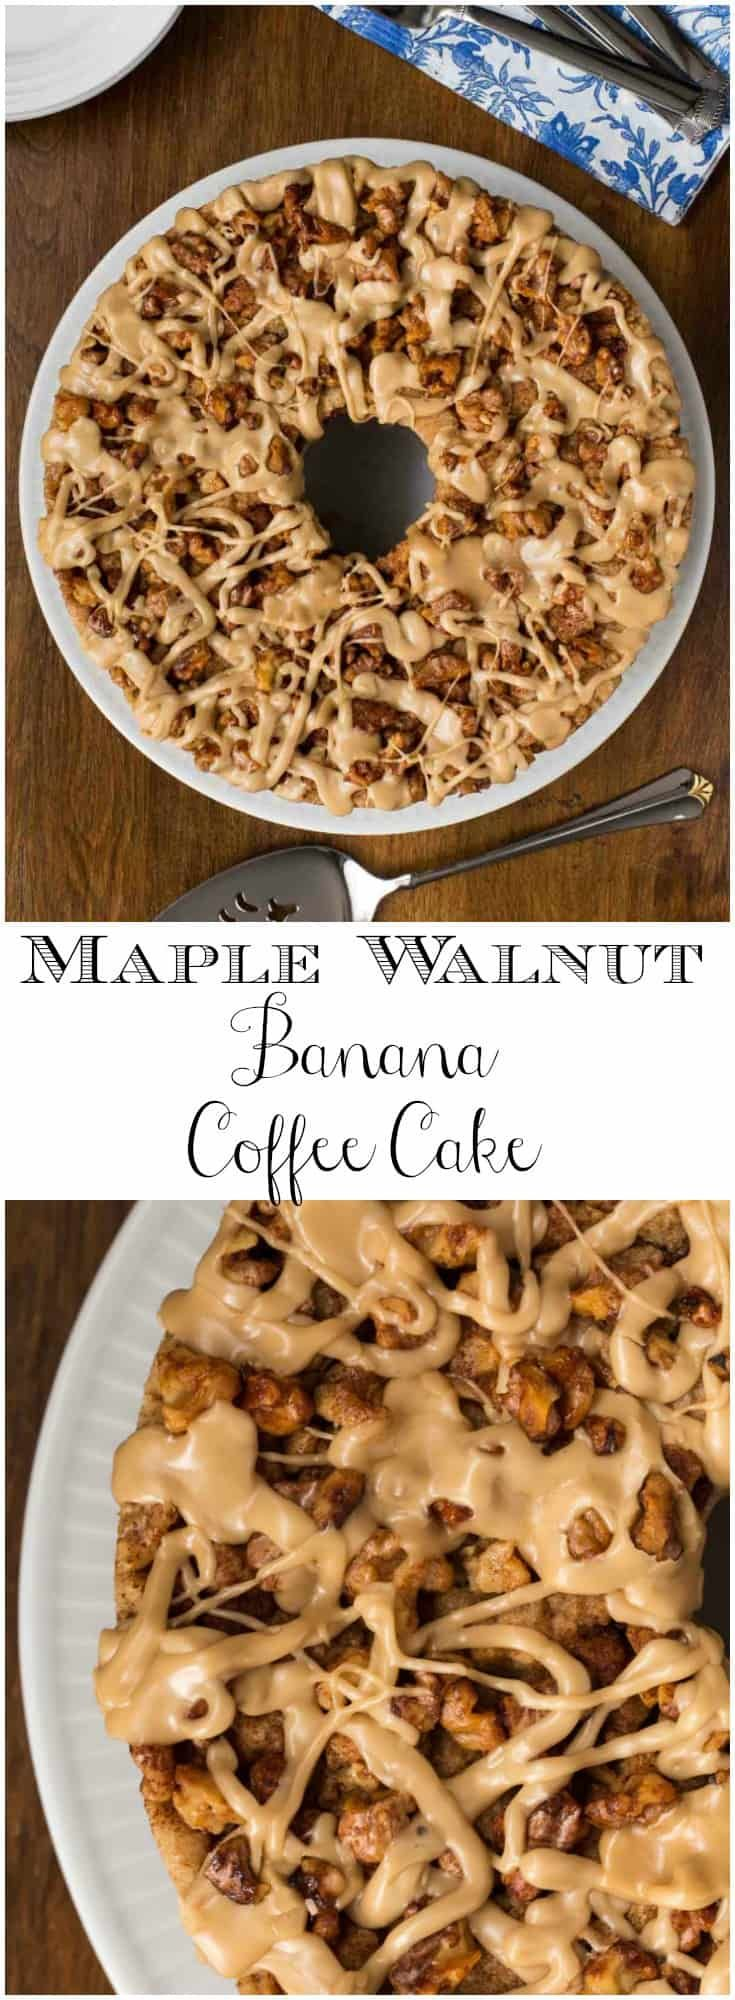 ThisMaple Walnut Banana Coffee Cake will be the shining star of any breakfast or brunch buffet and comes together easily, without pulling out the mixer! via @cafesucrefarine